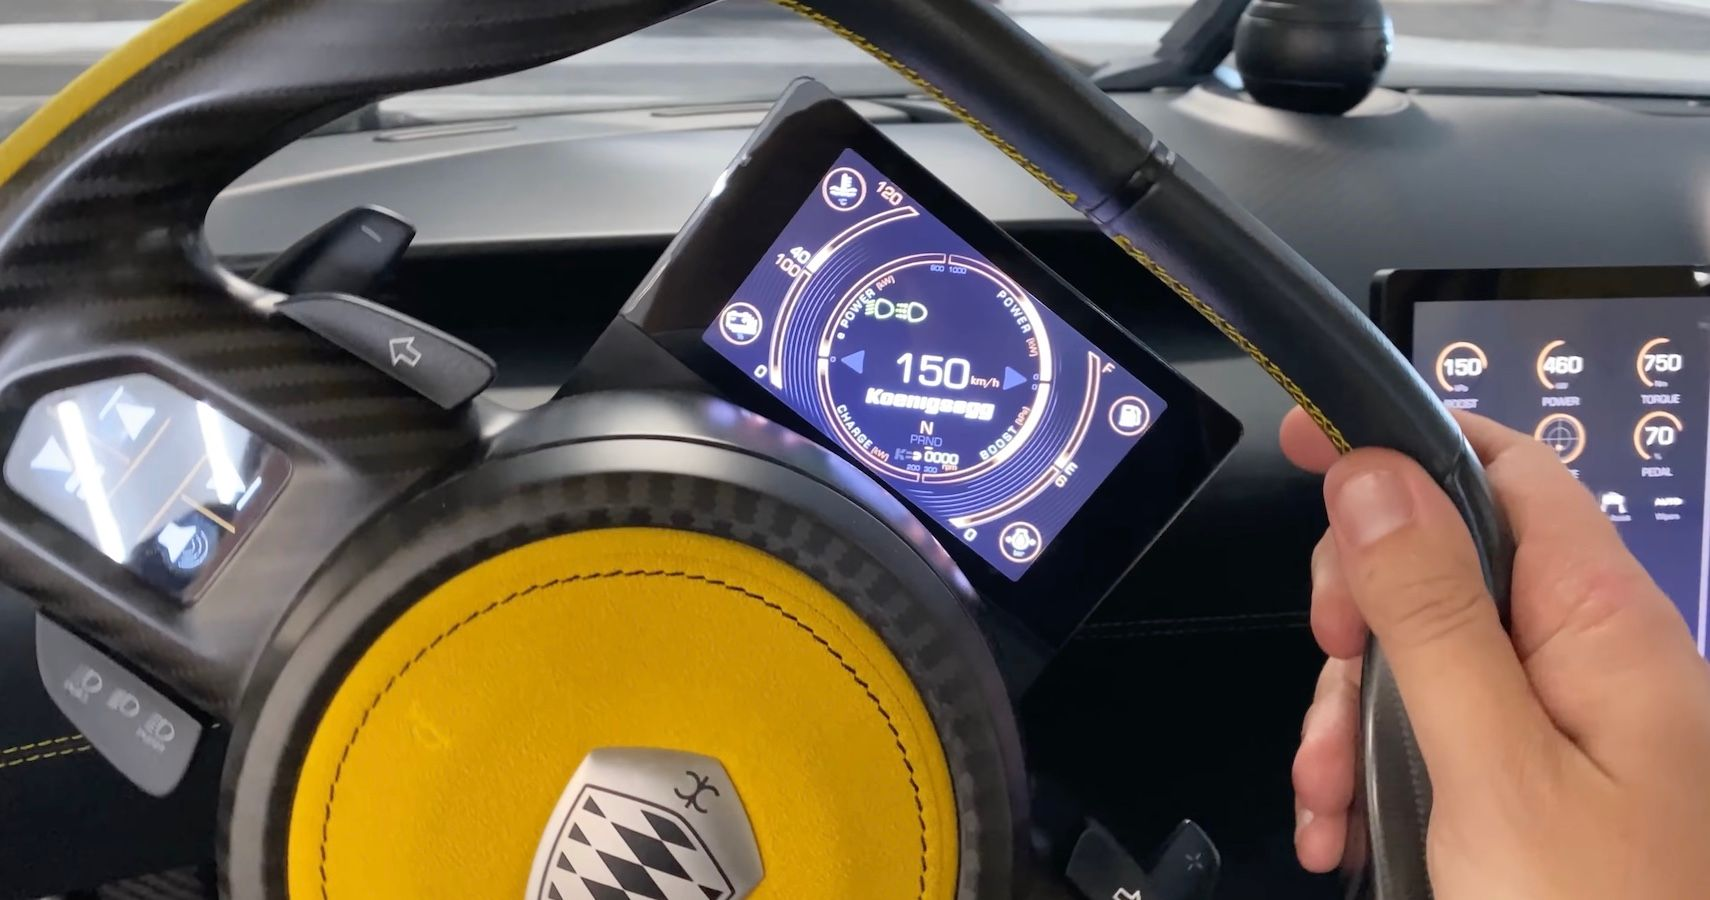 Watch The Koenigsegg Gemera's Really Cool Cluster Screen Adapt To Every Turn